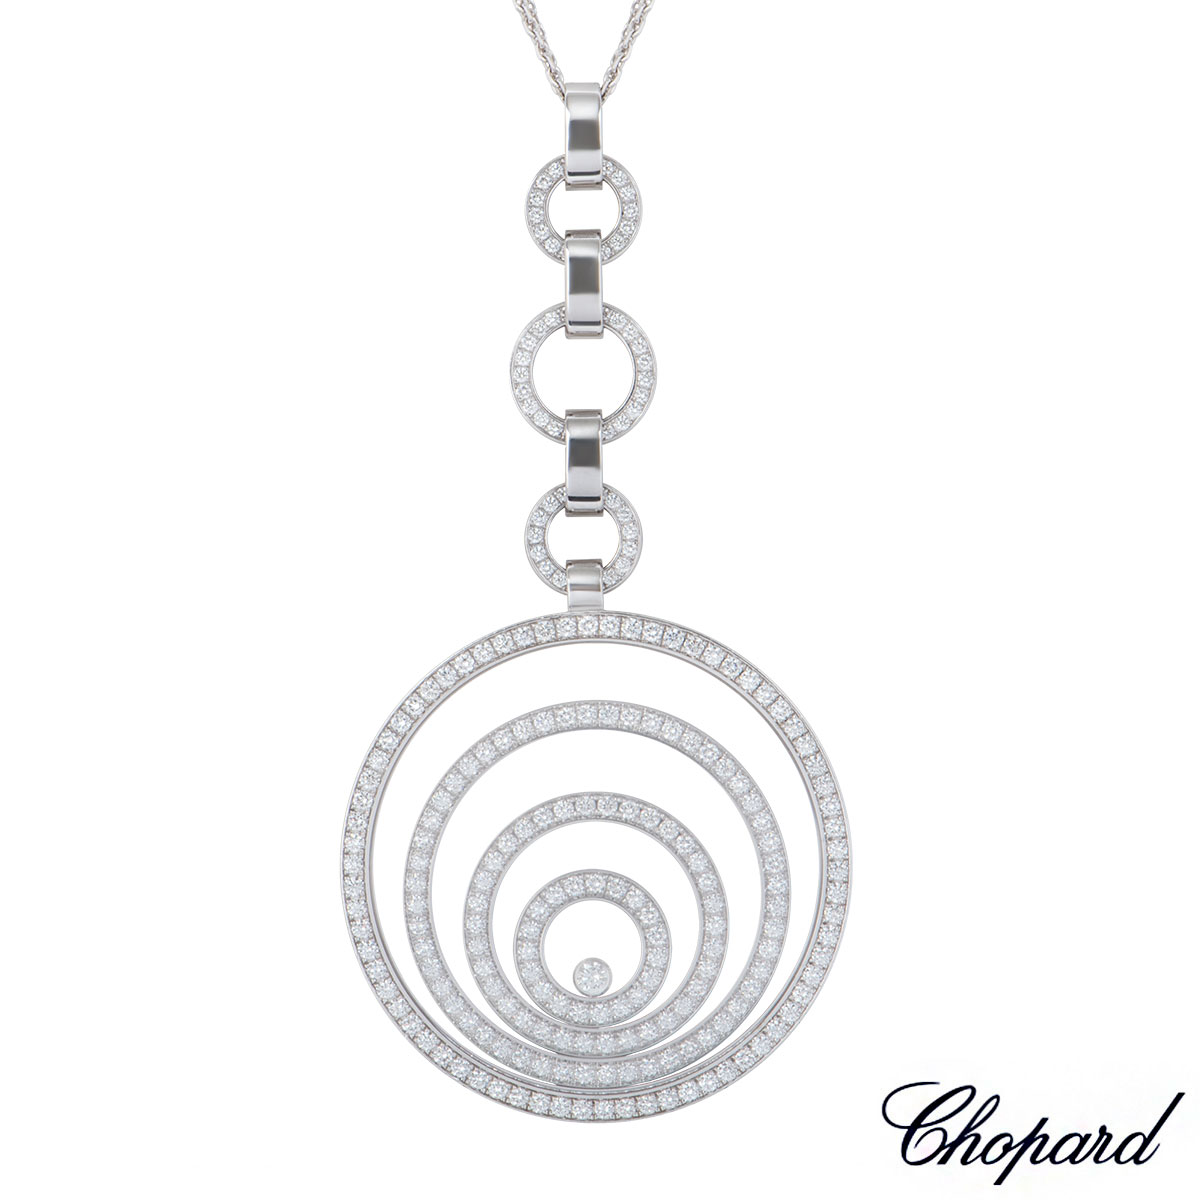 Chopard White Gold Diamond Happy Spirit Necklace 796135-1001